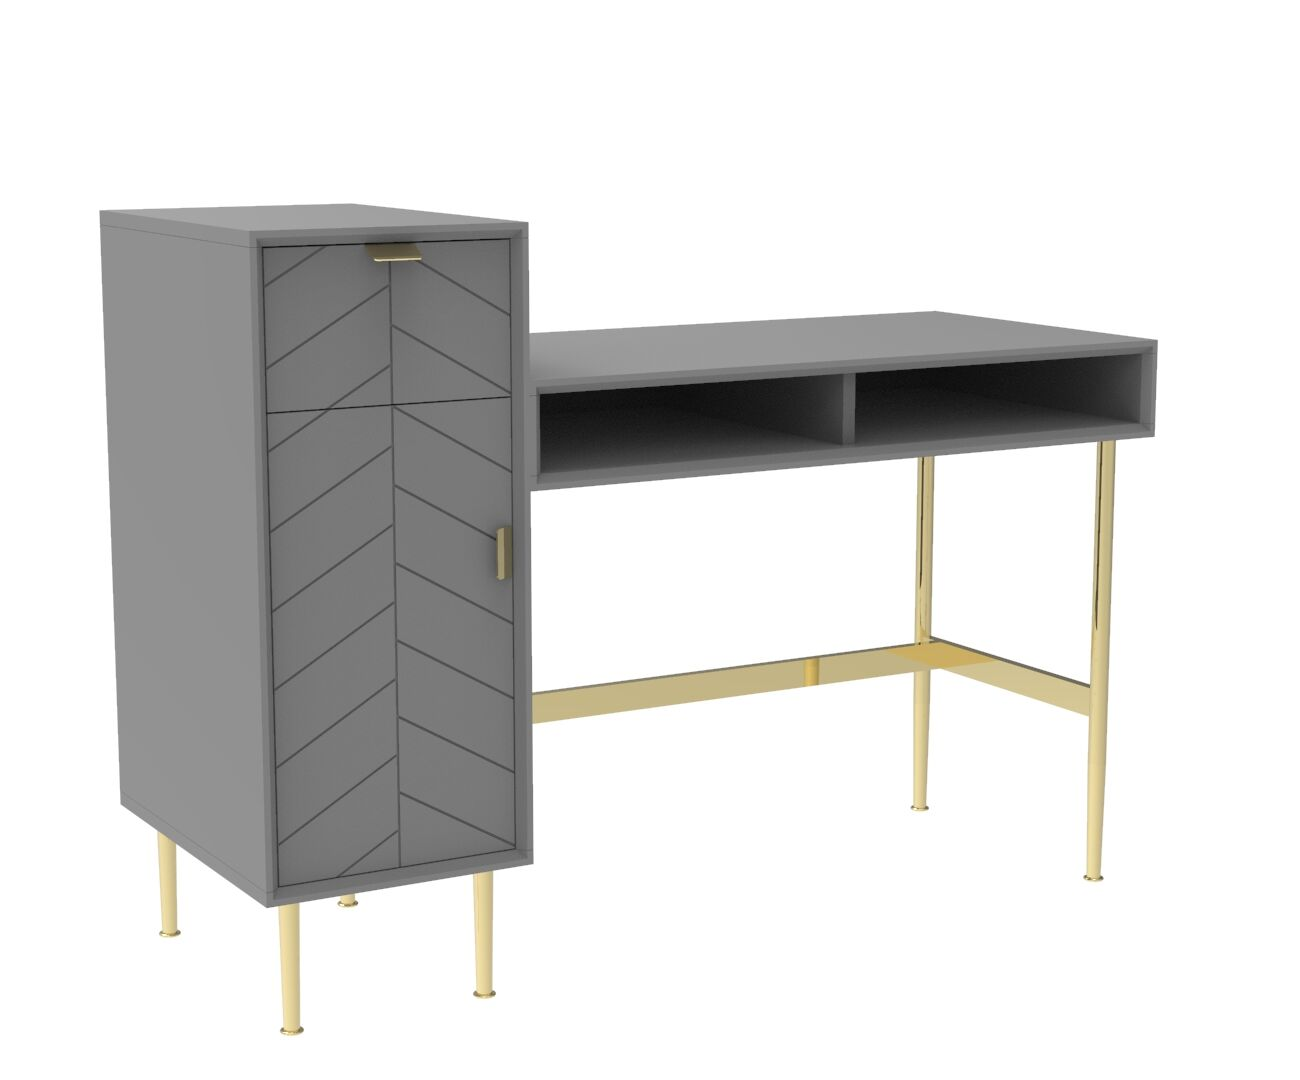 Chevron-patterned Adele Desk with Storage Space, in Mist Grey and Brass